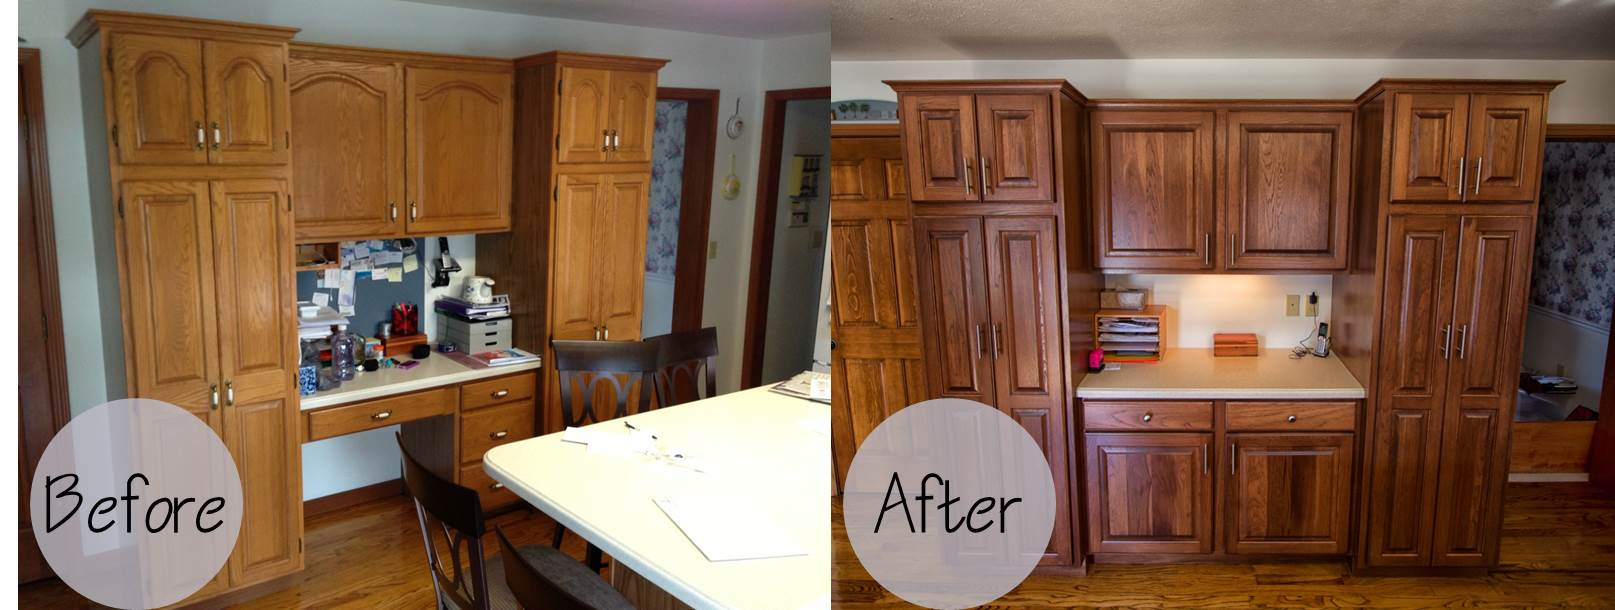 Cabinet Refacing Bucks County PA | Kitchen Cabinet Refacers ...